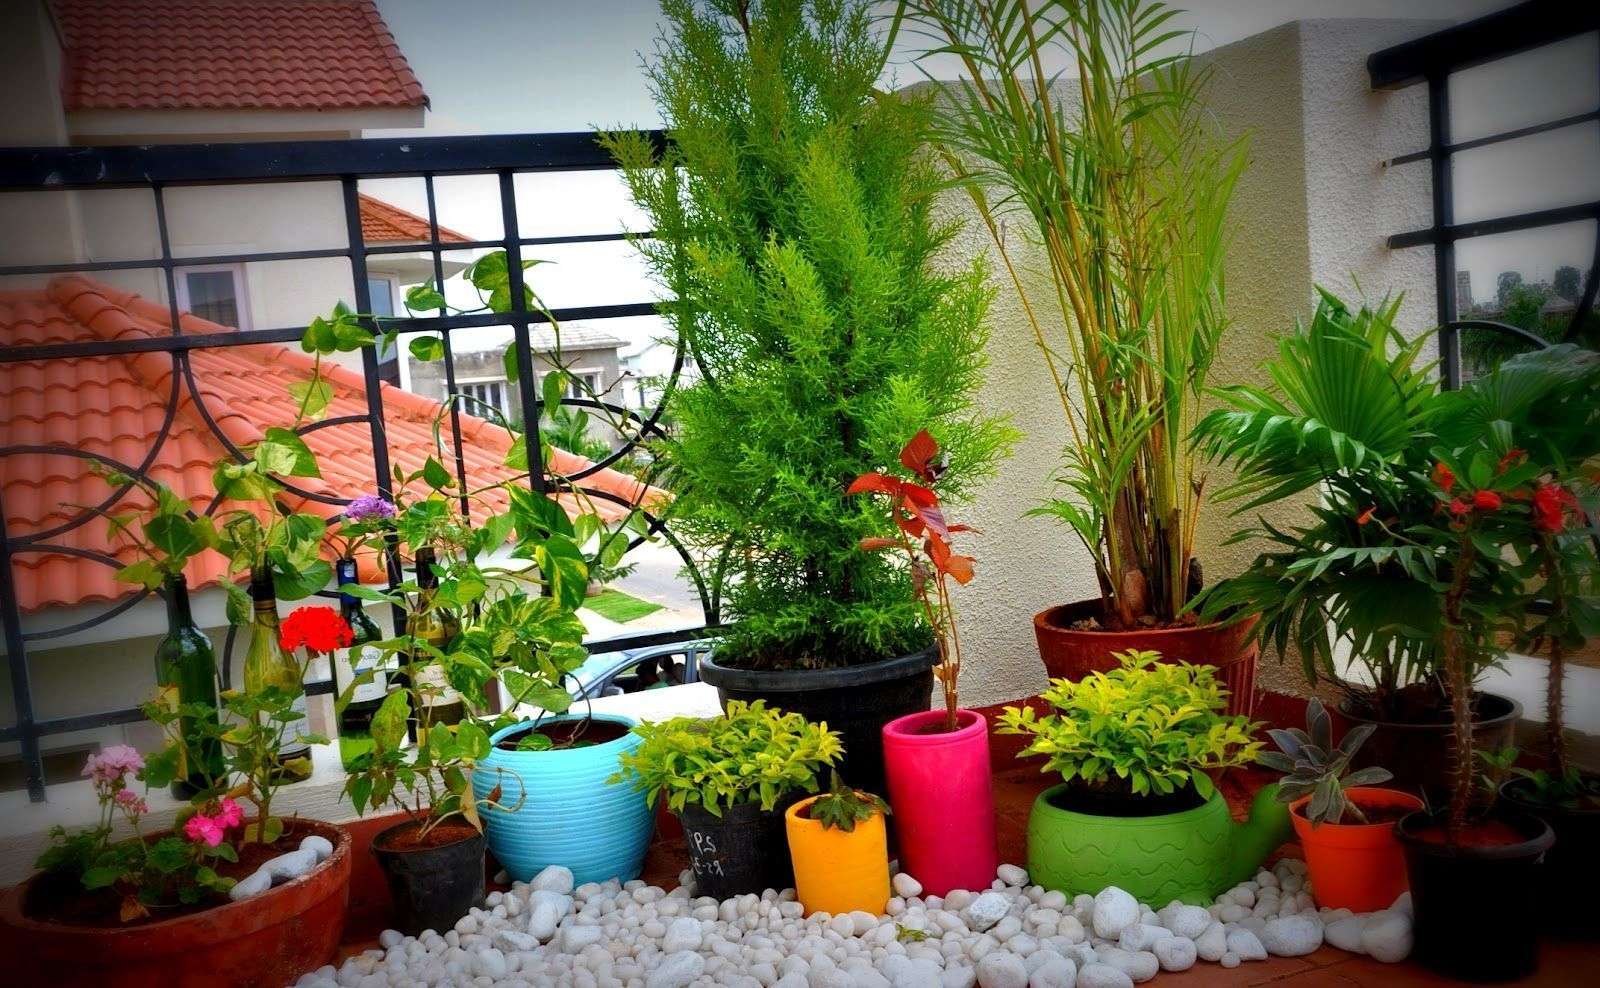 41 Creative Diy Small Apartment Balcony Garden Ideas - ZYHOMY